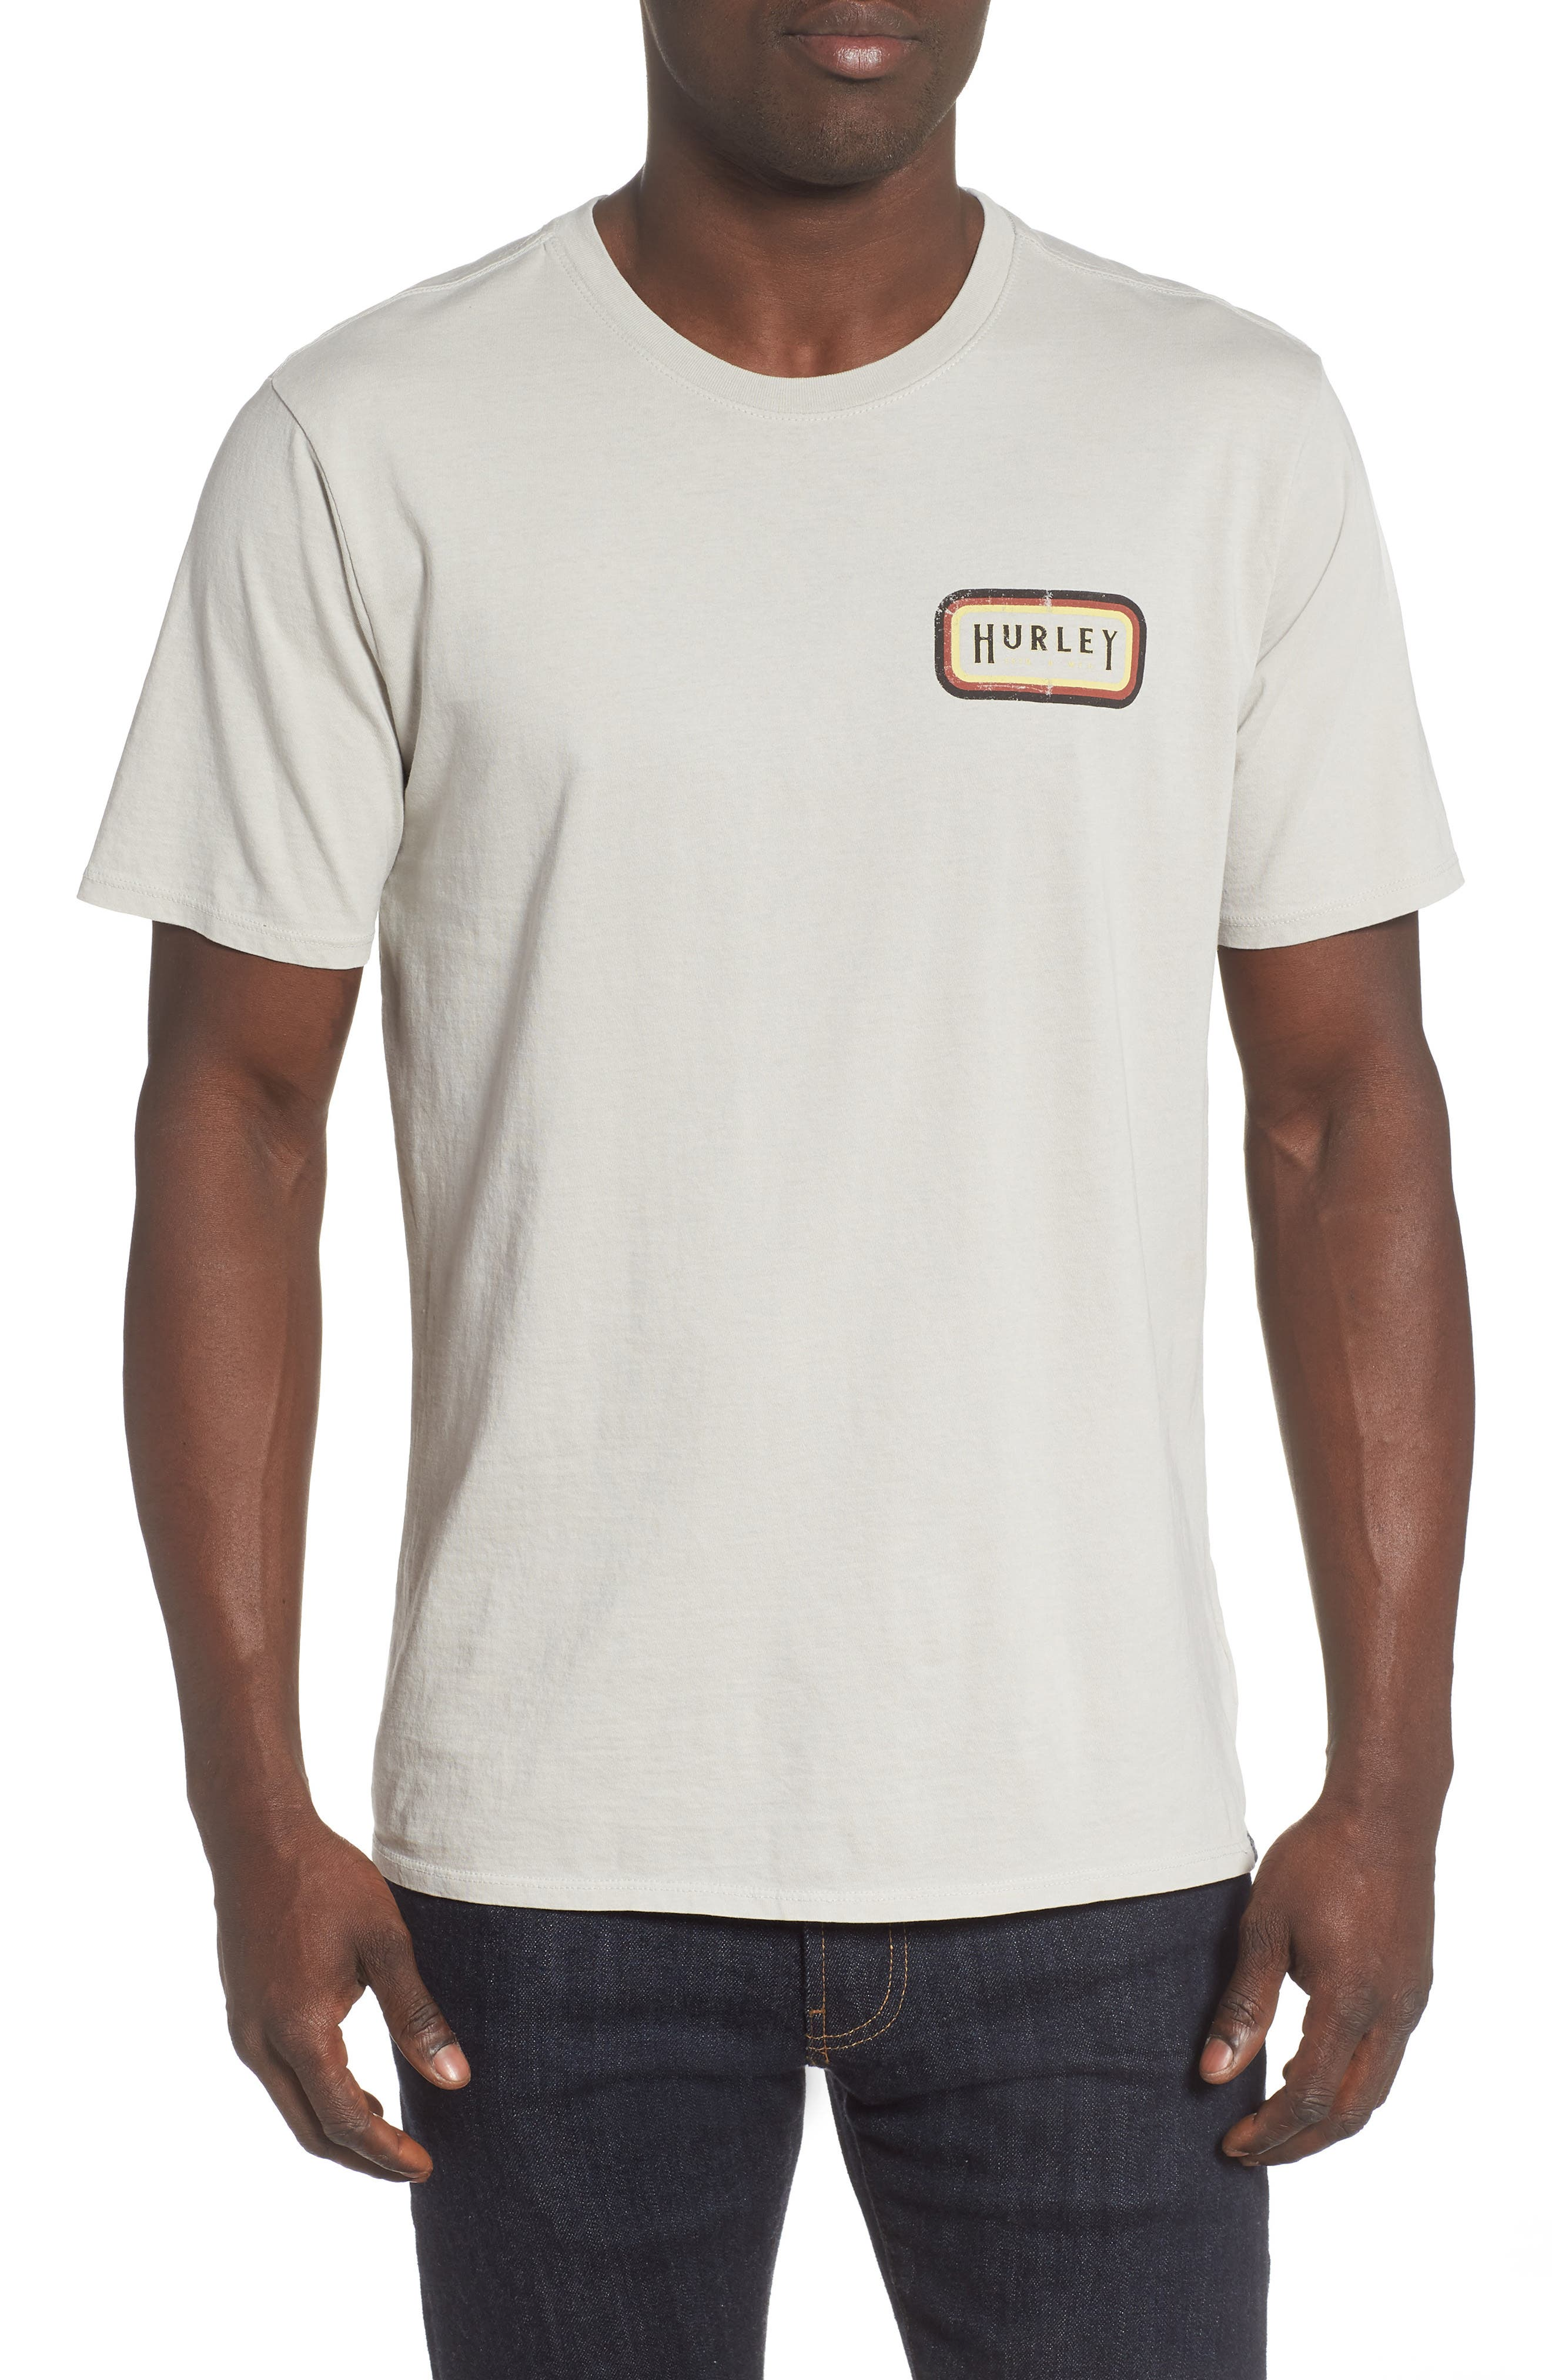 7058d2739 Hurley Men's T-Shirts, stylish comfort clothing